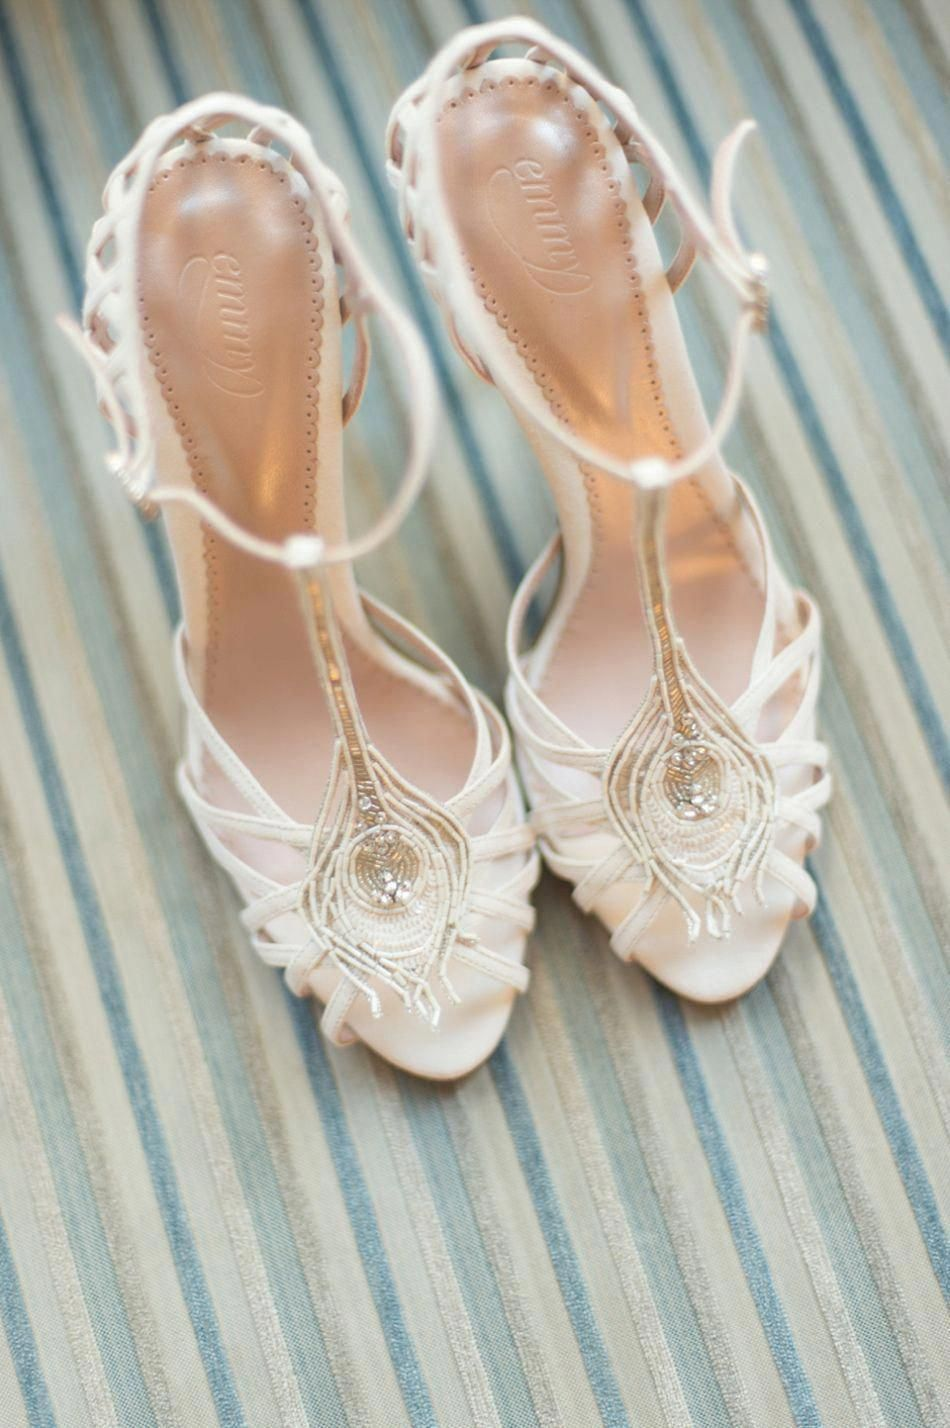 Affordable Wedding Venues Near Me Topweddingphotographers Wedding Shoes Vintage Wedding Shoes Bride Shoes